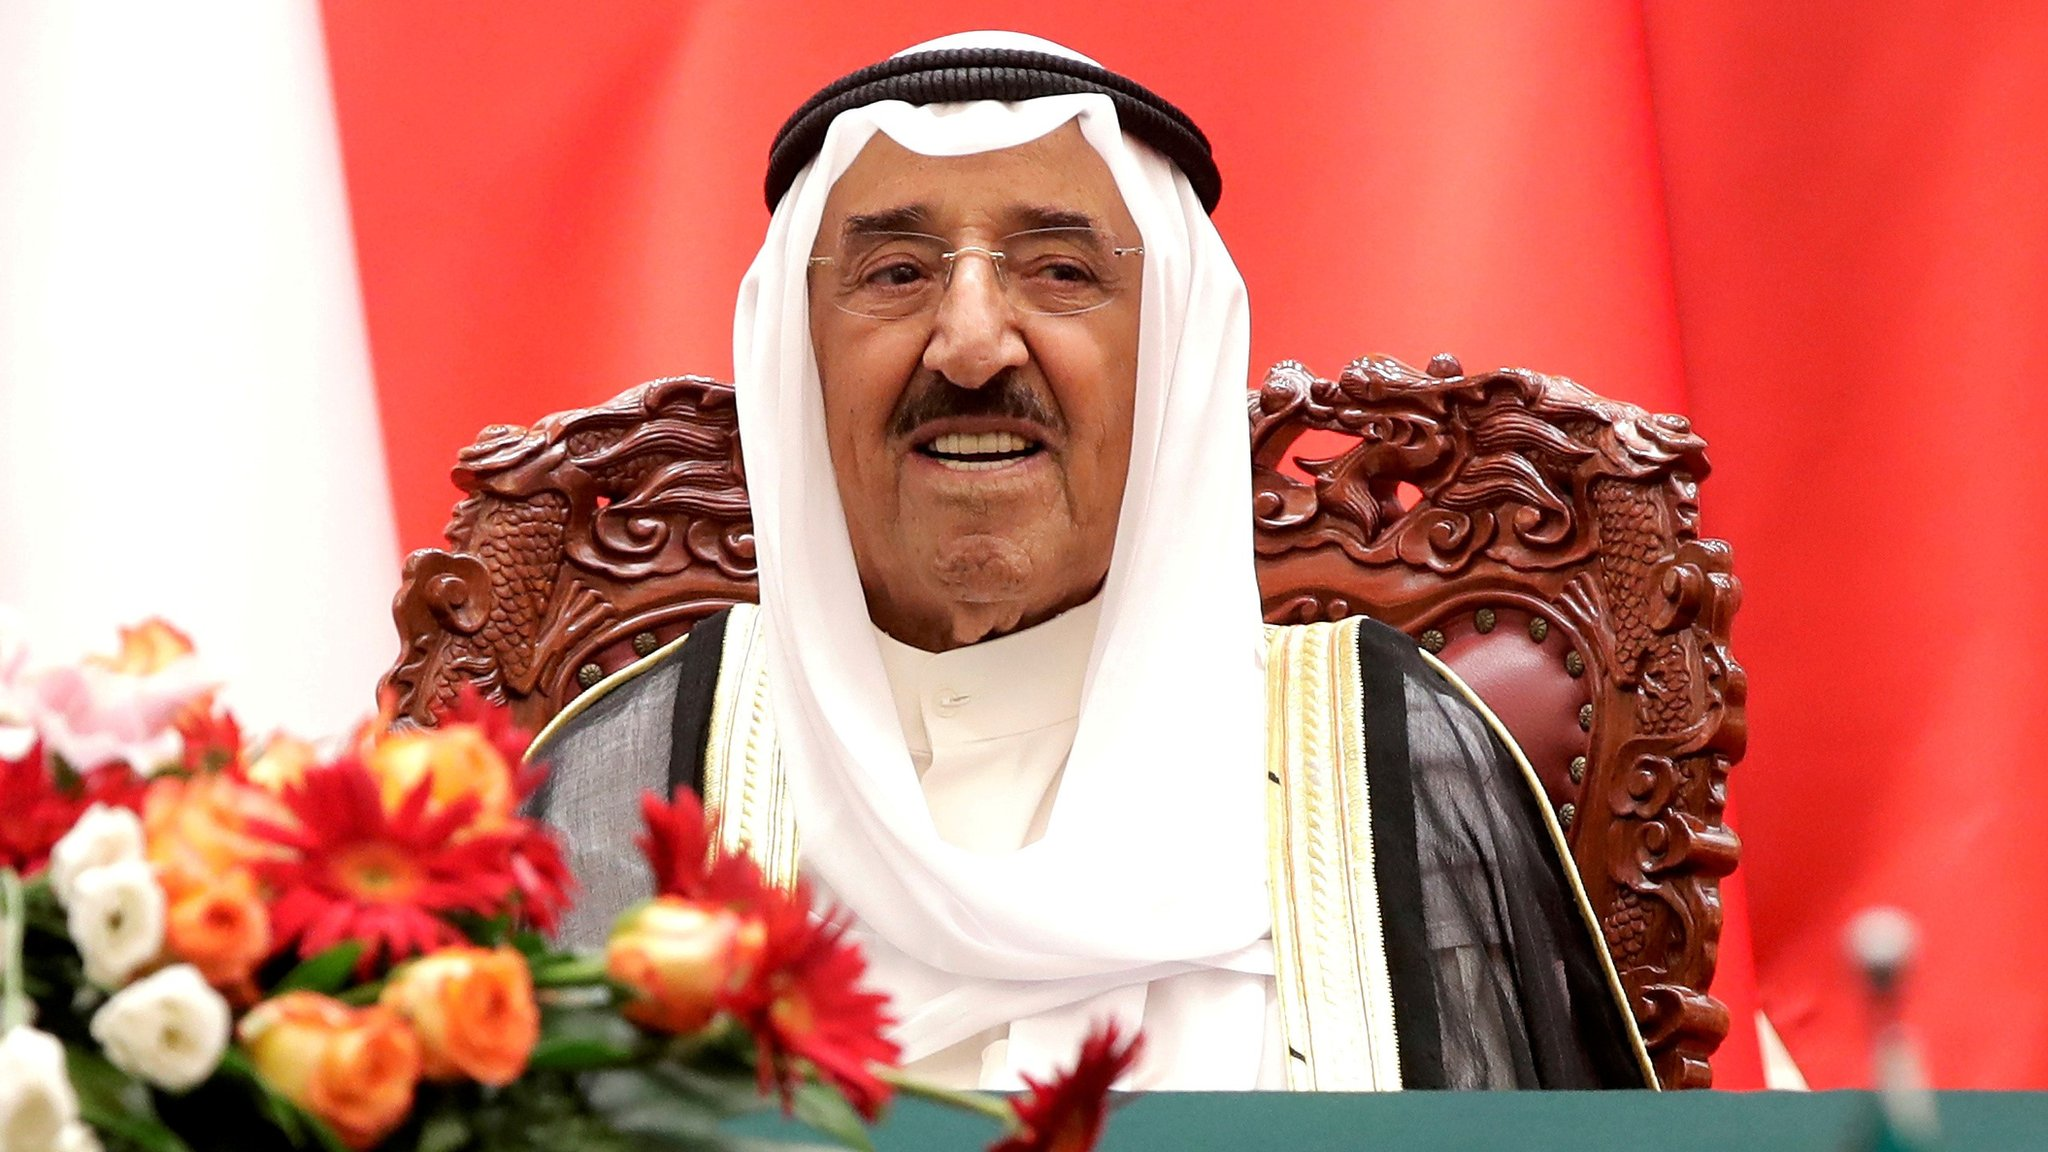 Kuwait's Emir Sheikh Sheikh Sabah al-Ahmed al-Sabah witnesses a signing ceremony at the Great Hall of the People in Beijing, China (9 July 2018)